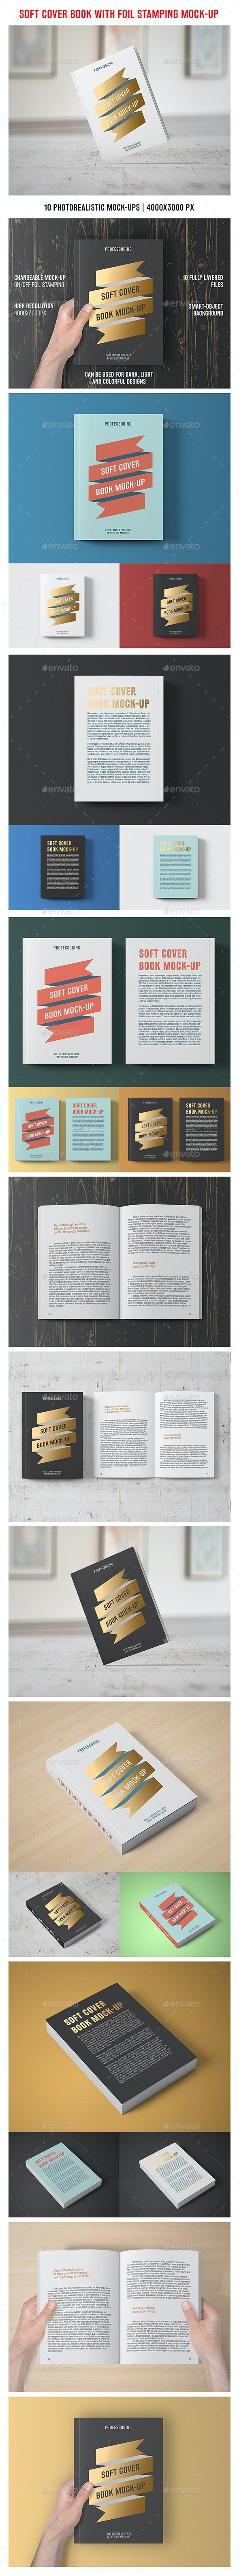 Soft Cover Book With Foil Stamping Mock-Up - Books Print